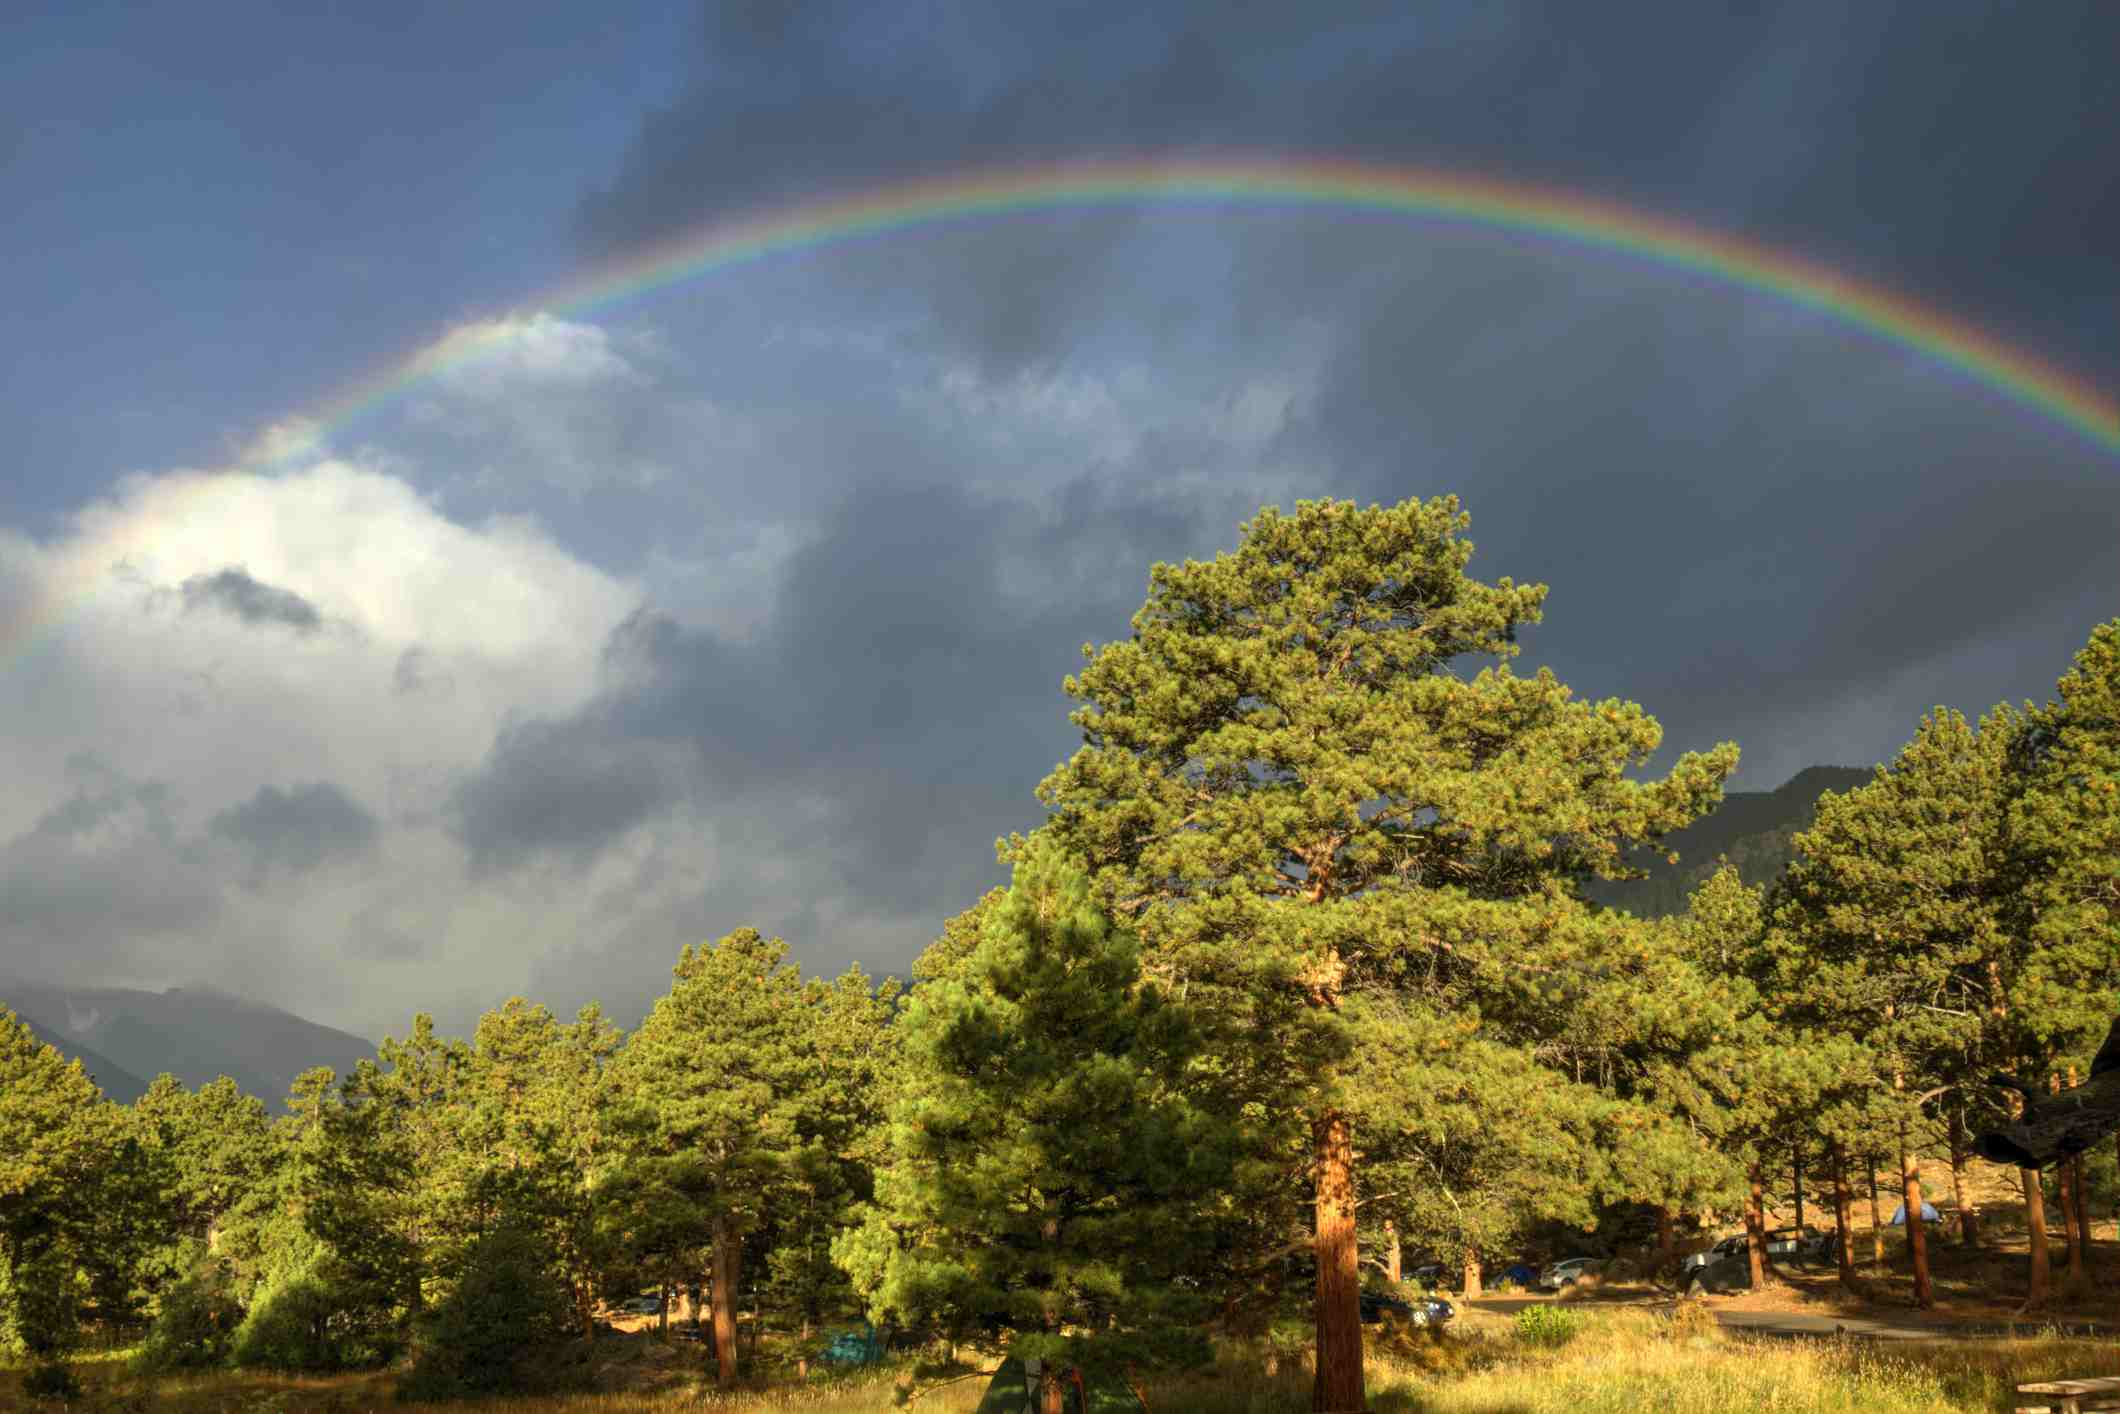 A rainbow over a campground in RMNP